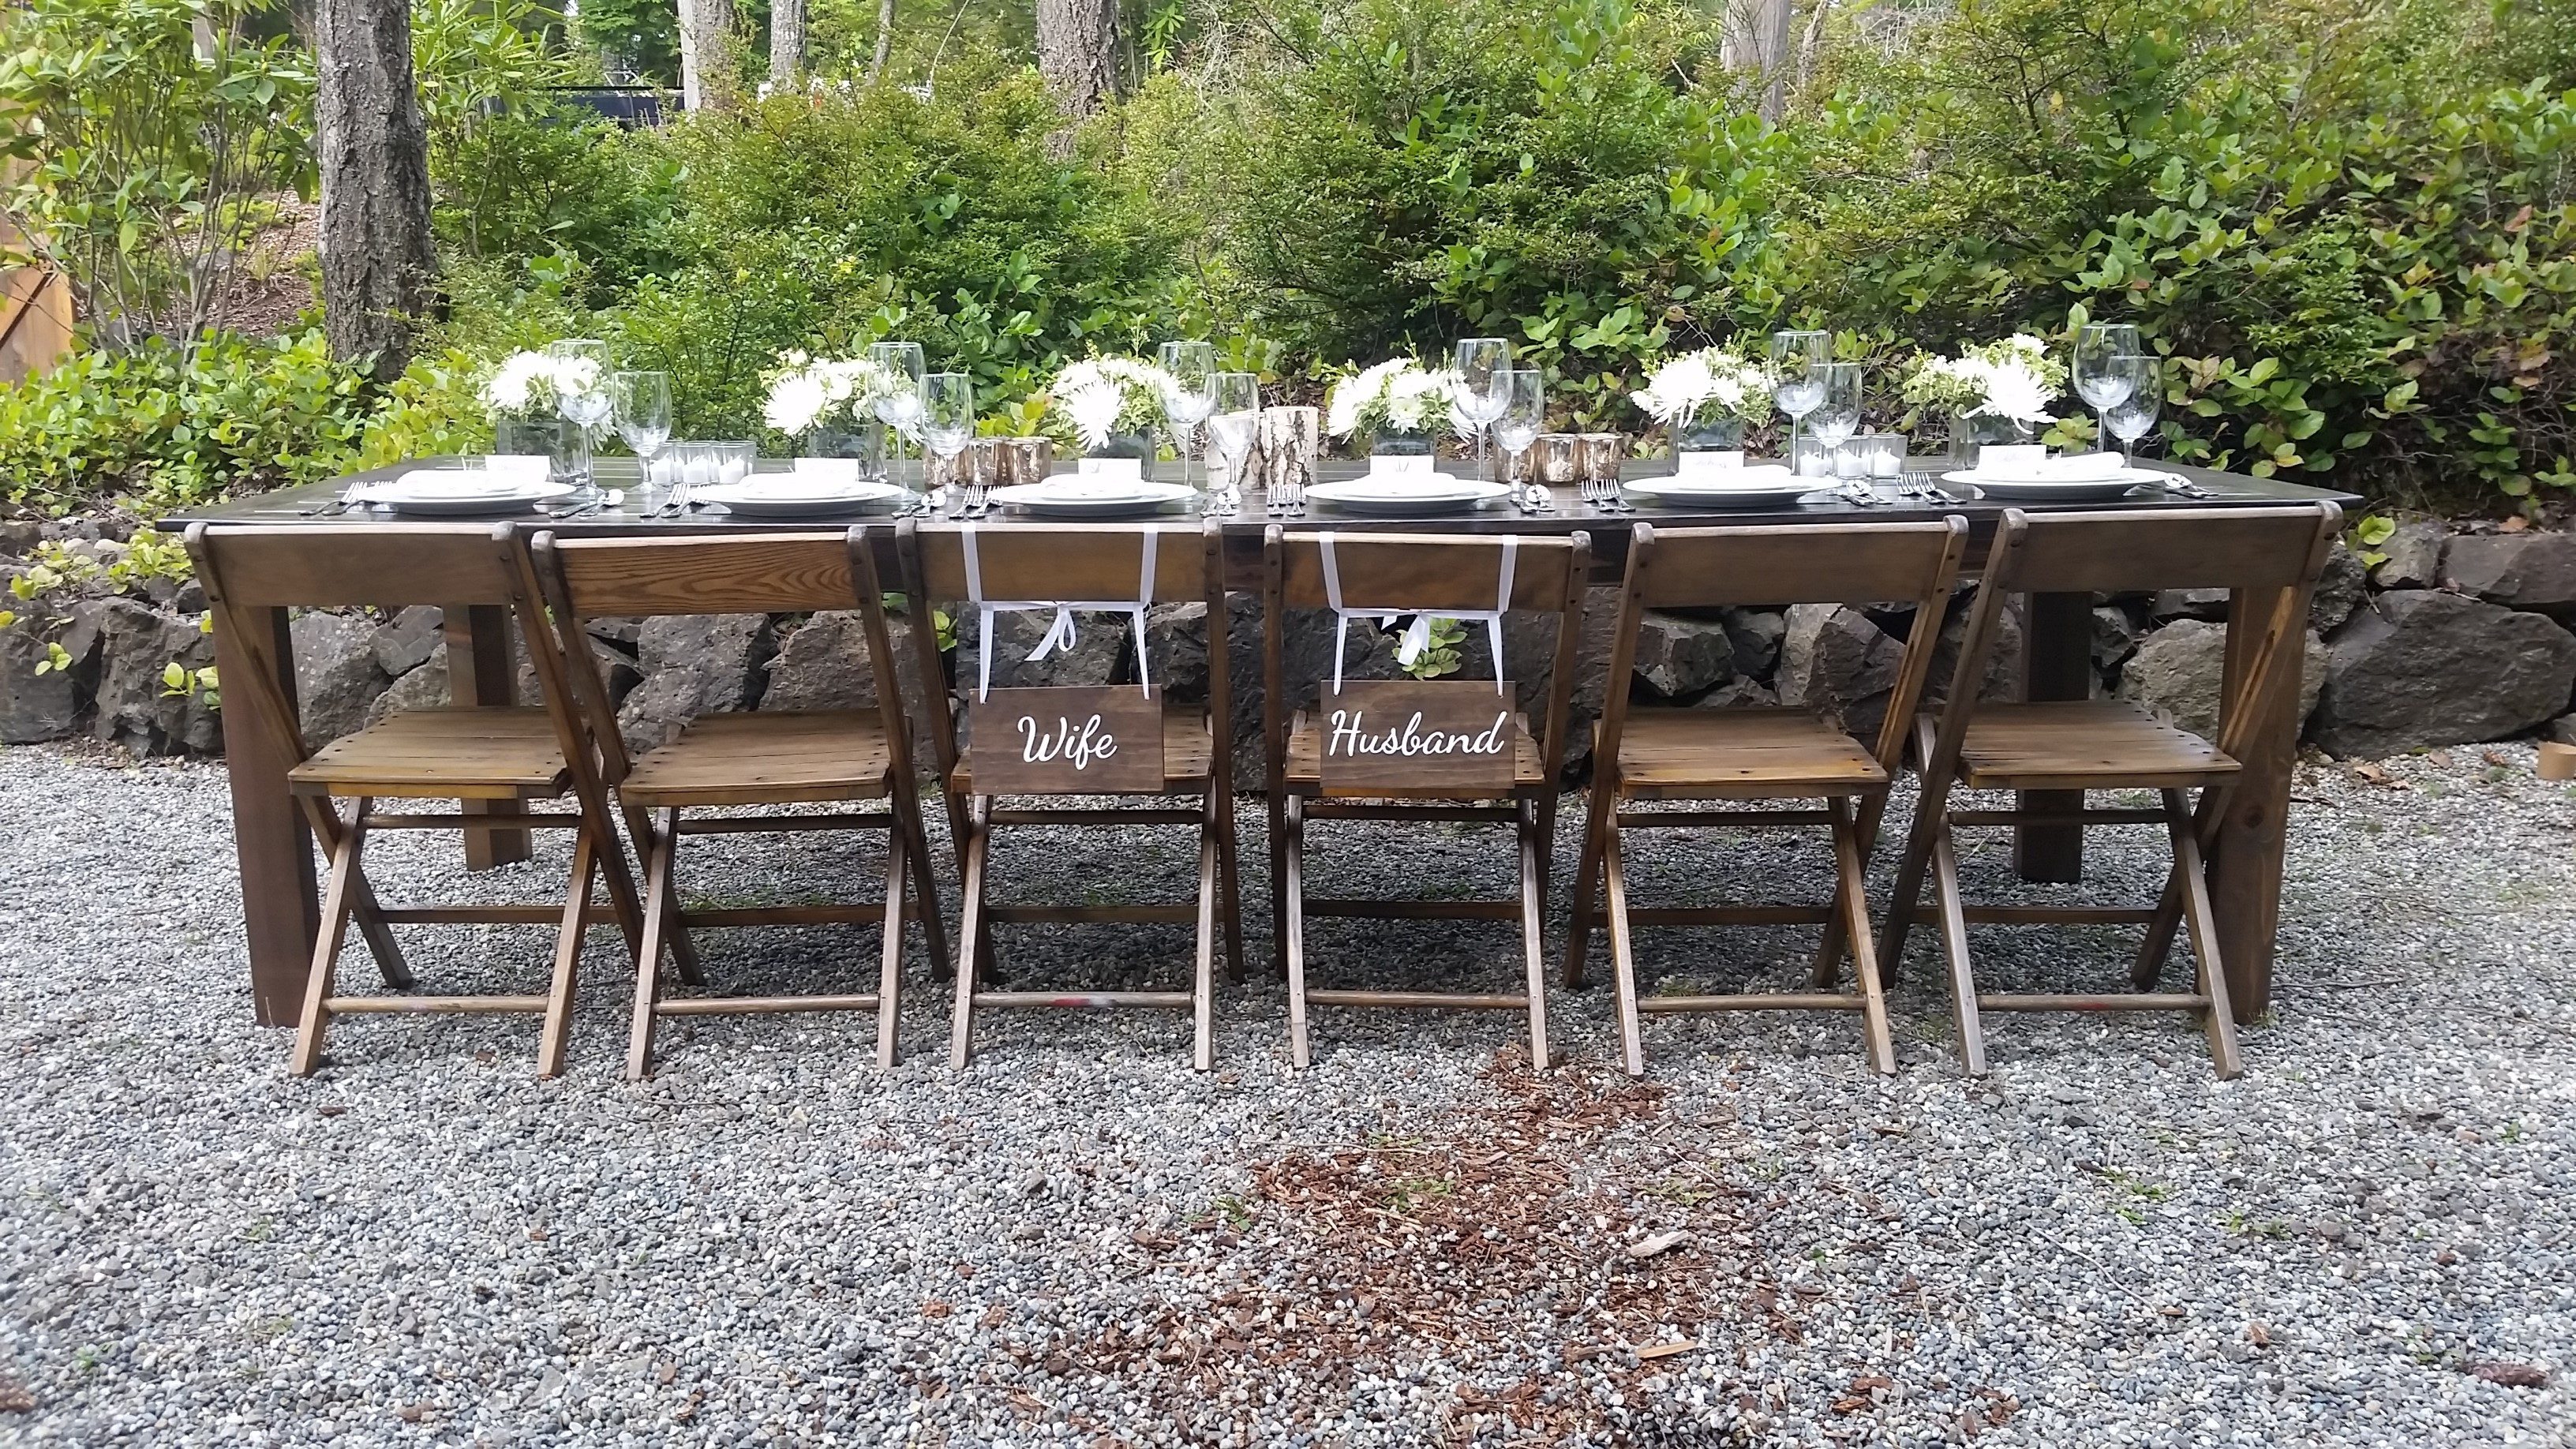 Our Hand Crafted 10u2032 Farm Tables, Benches, French Farm Chairs, Barn Doors,  Arbors, China And Stemware Compliment Any Venue.